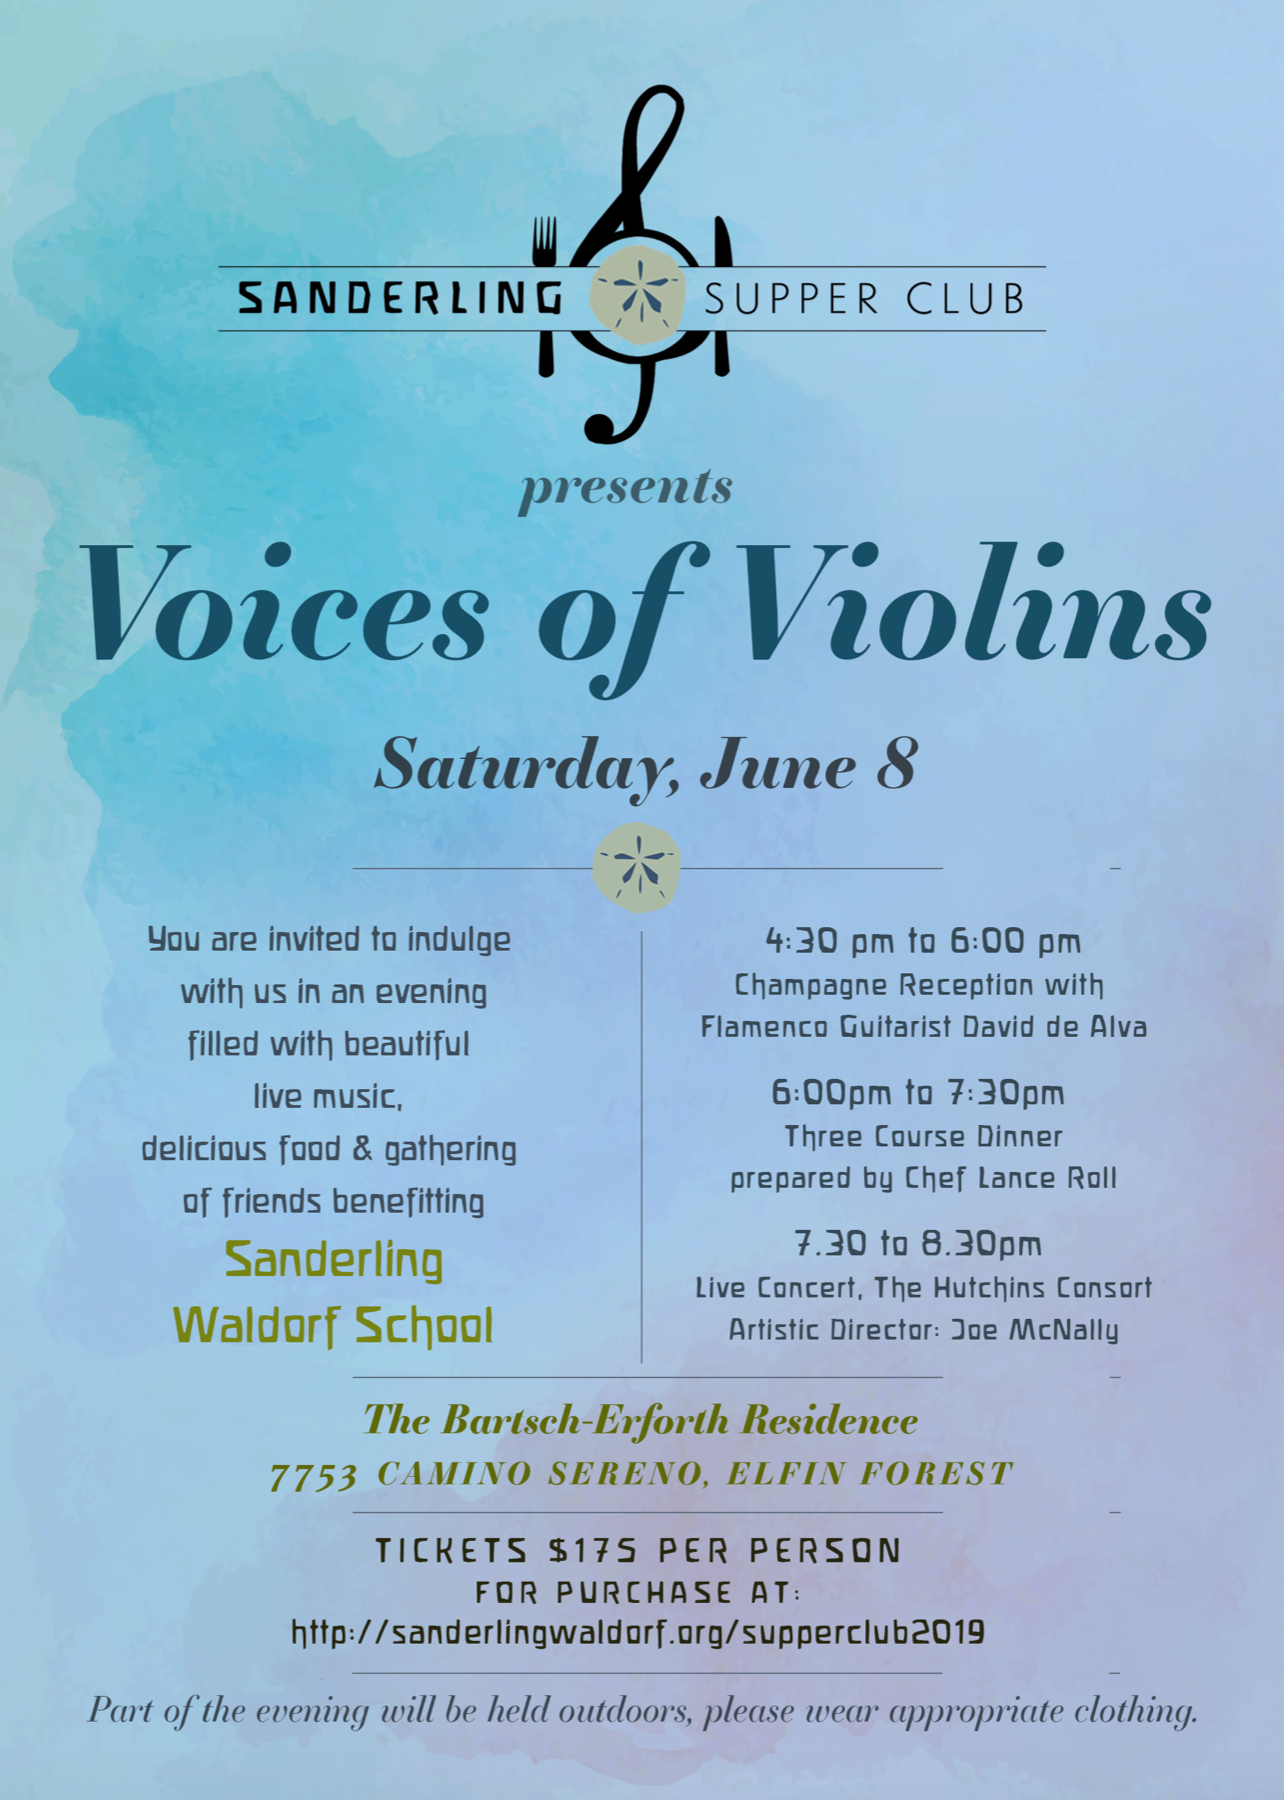 Supper Club 2019 - Voices of Violins